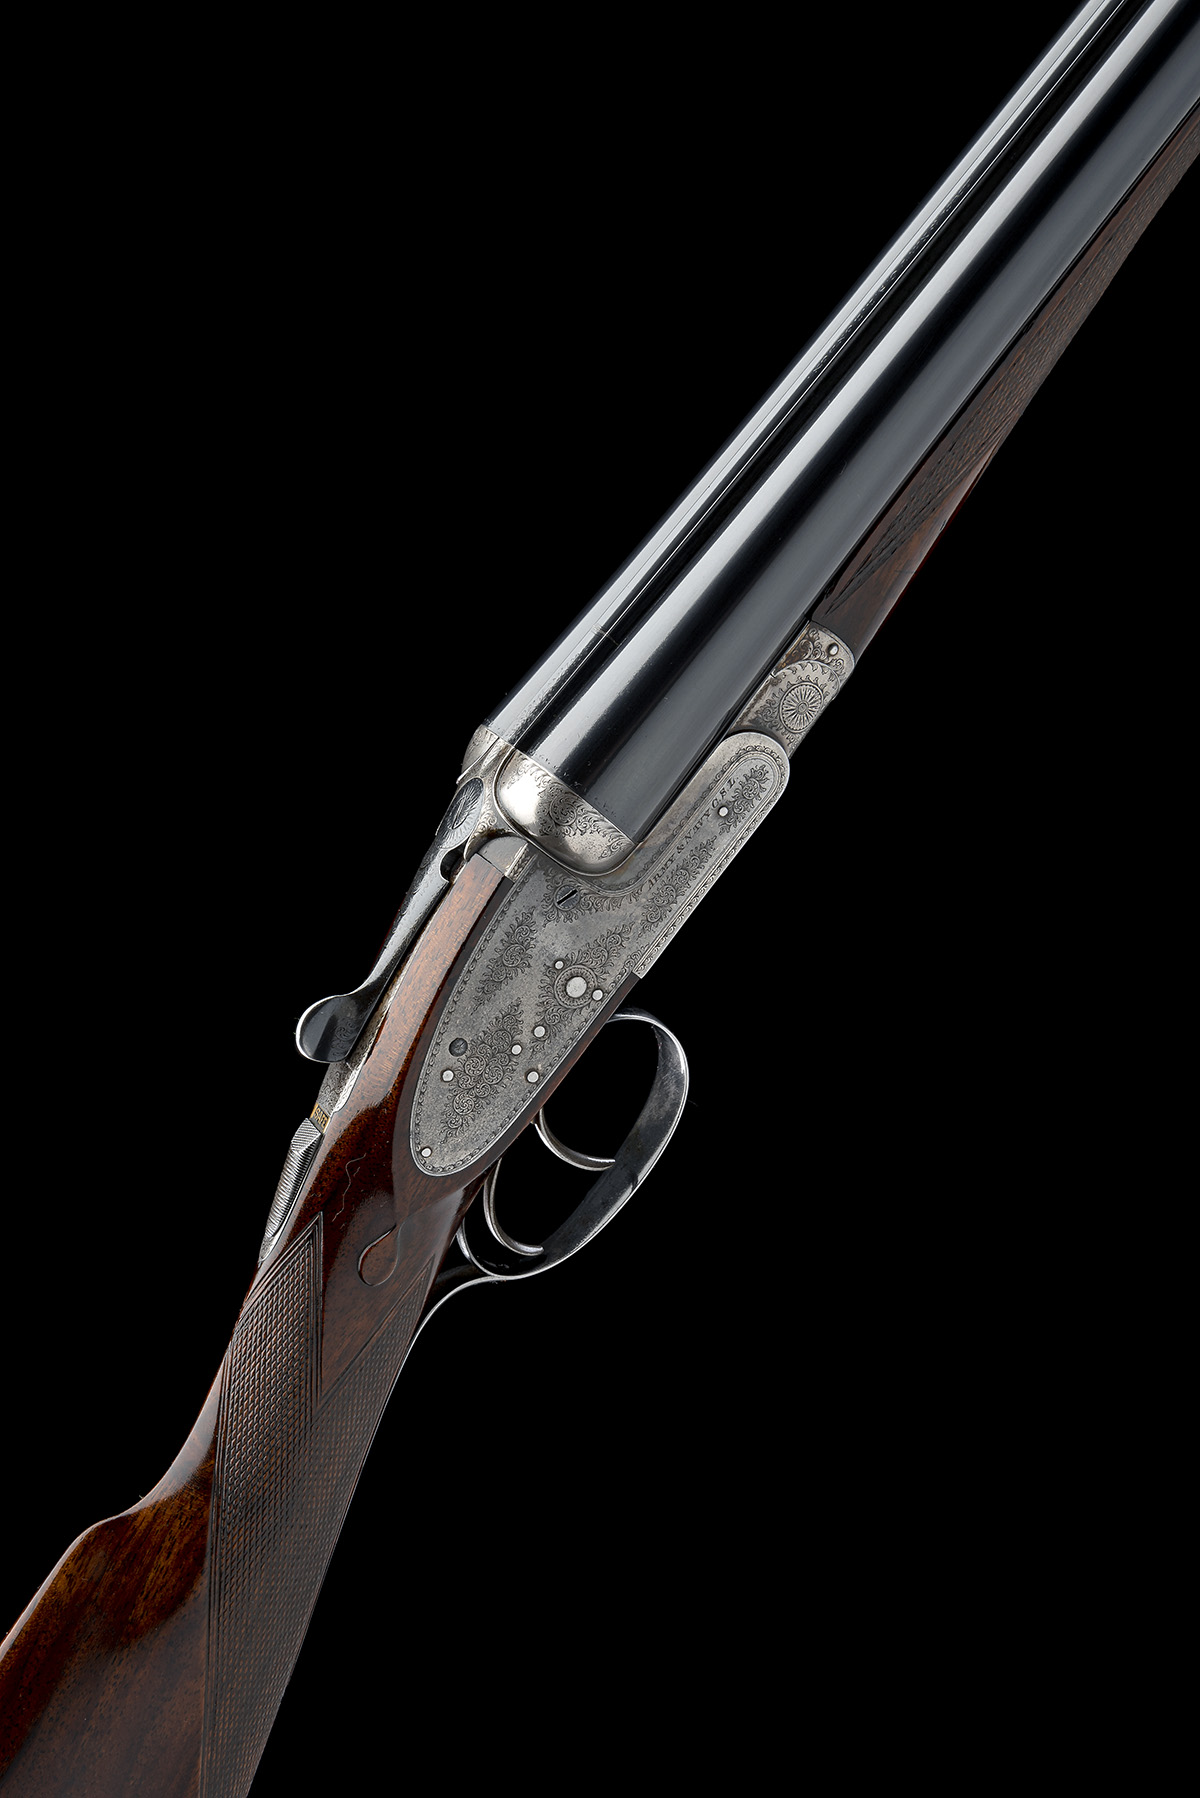 ARMY & NAVY C.S.L. A 12-BORE SIDELOCK EJECTOR, serial no. 57586, circa 1911, 28in. nitro reproved